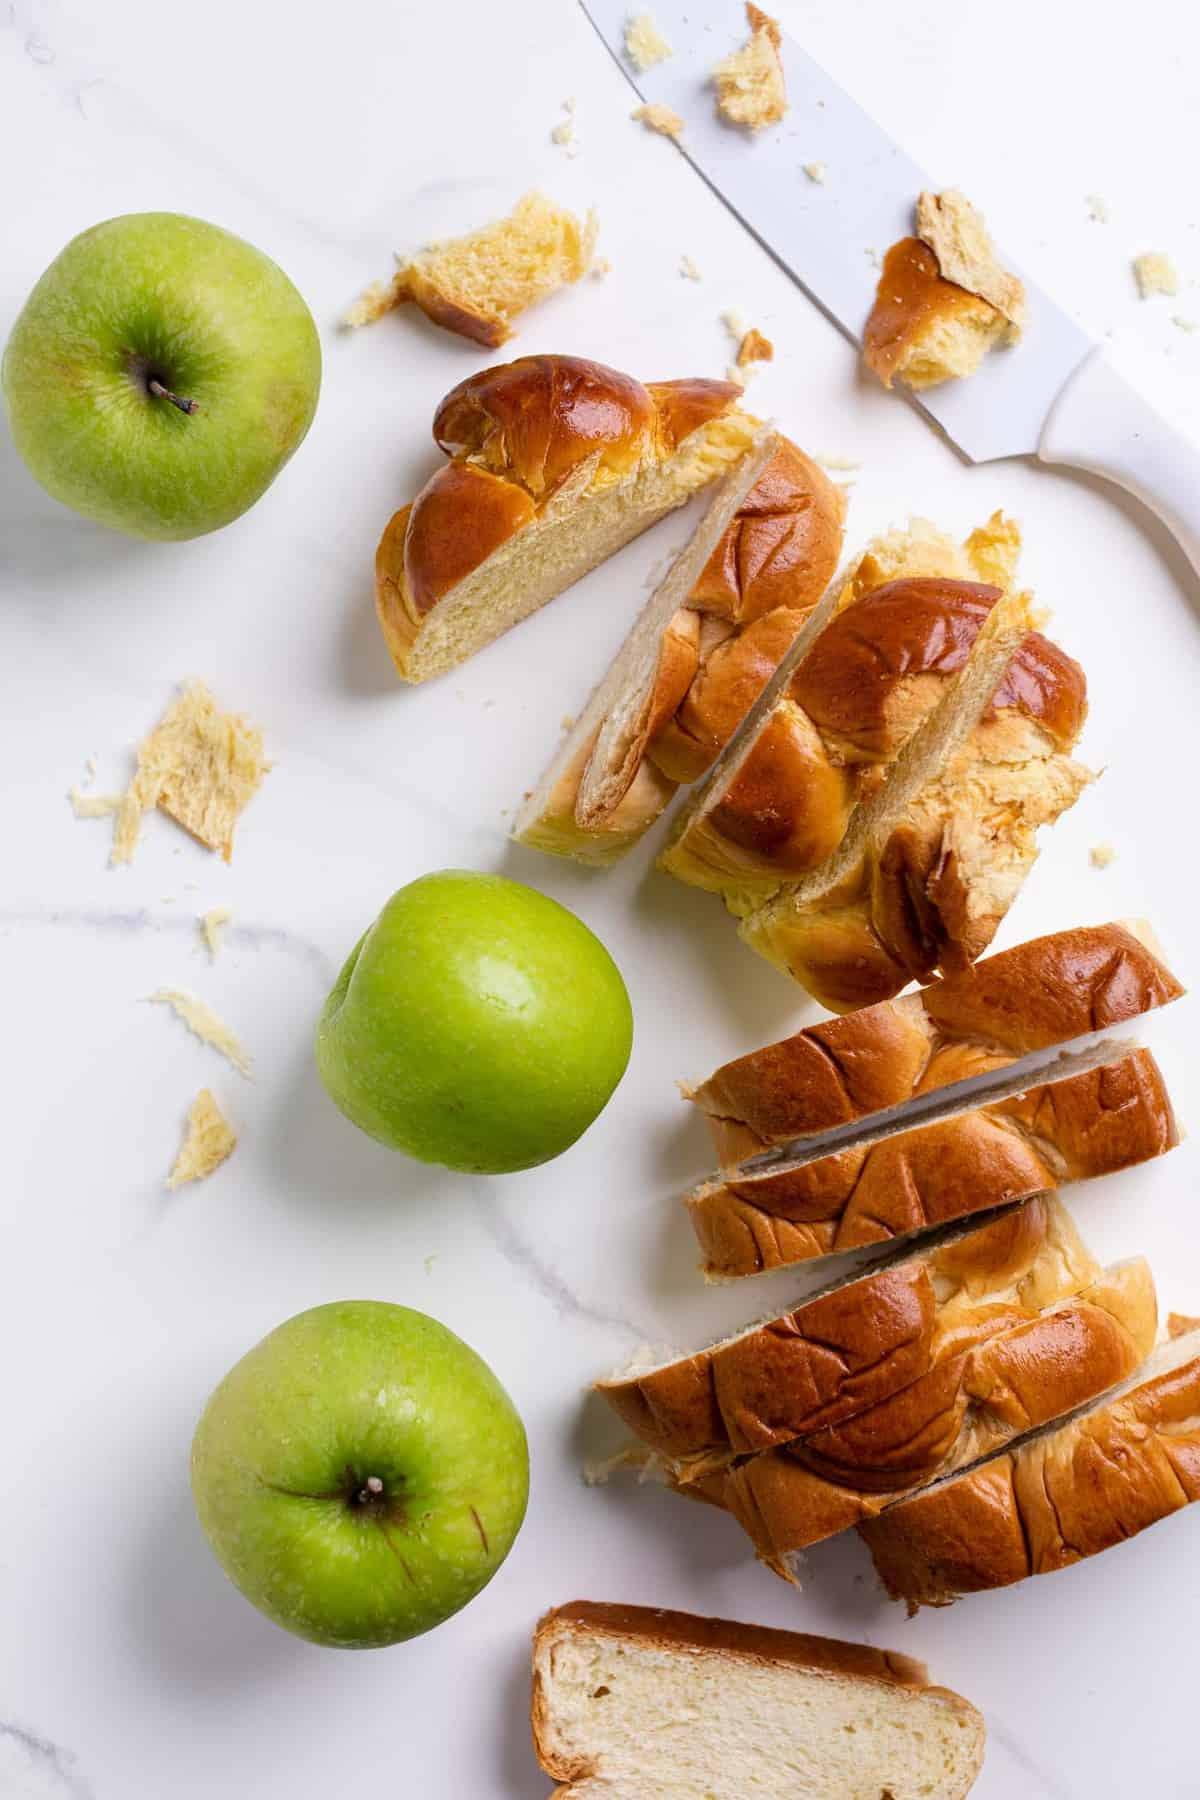 overhead of slices of challah bread and wgreen apples on a marble counter